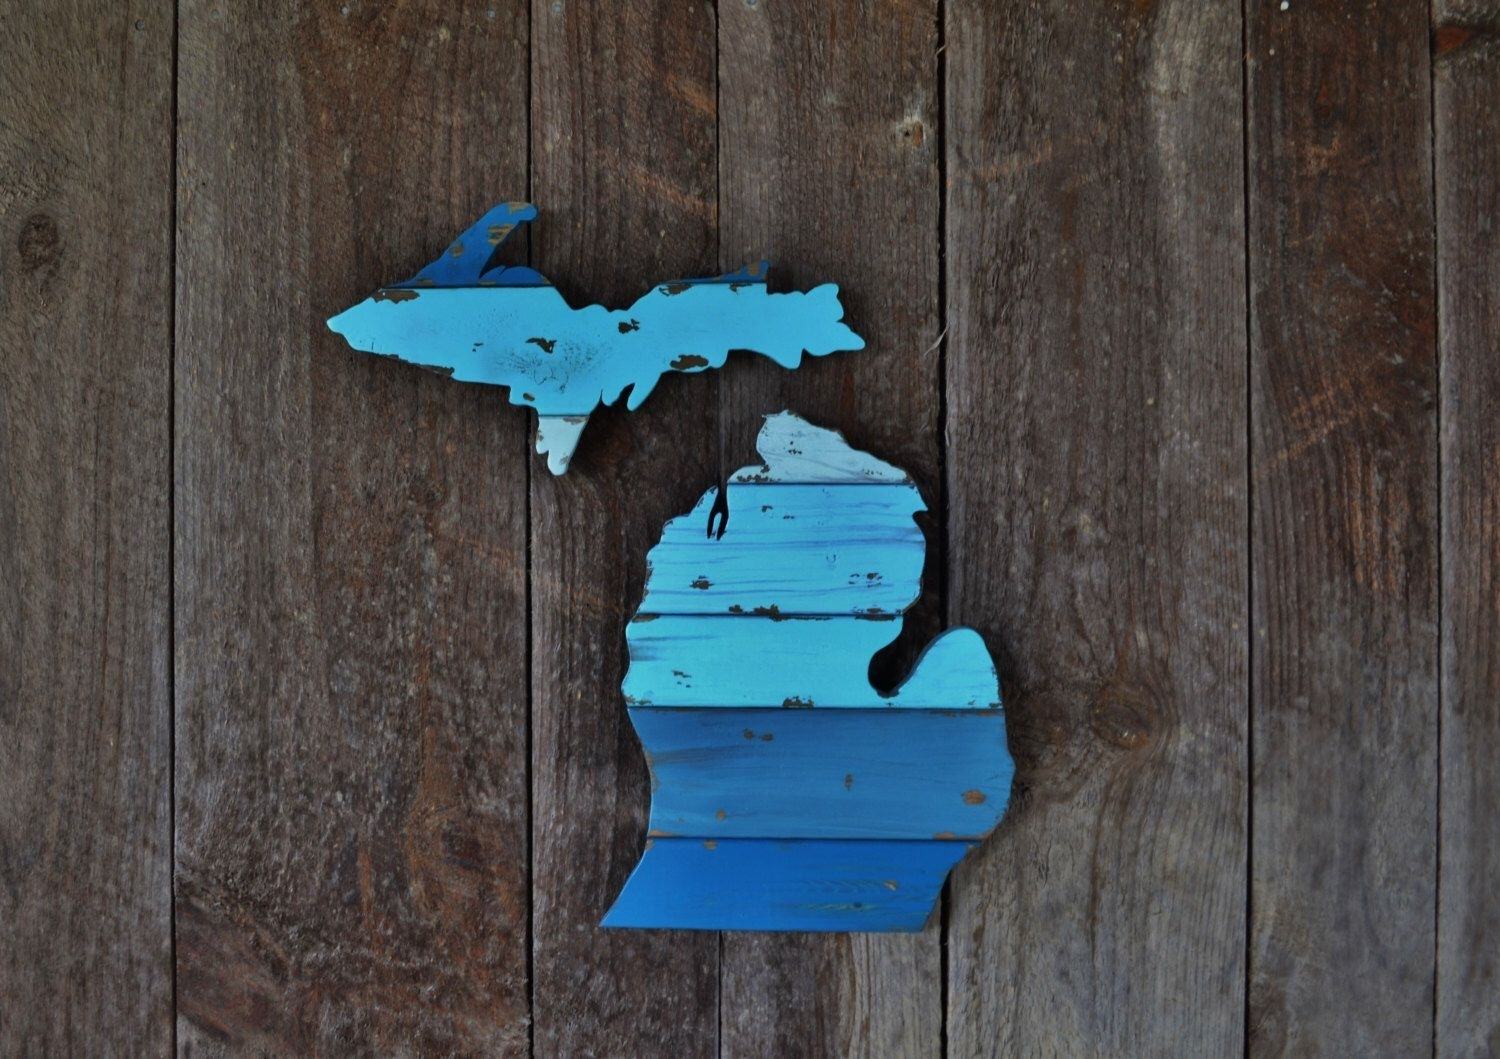 Hand Cut Wooden Michigan Wall Art: The Lelandthewoodnwall On Intended For Most Up To Date Michigan Wall Art (View 7 of 20)